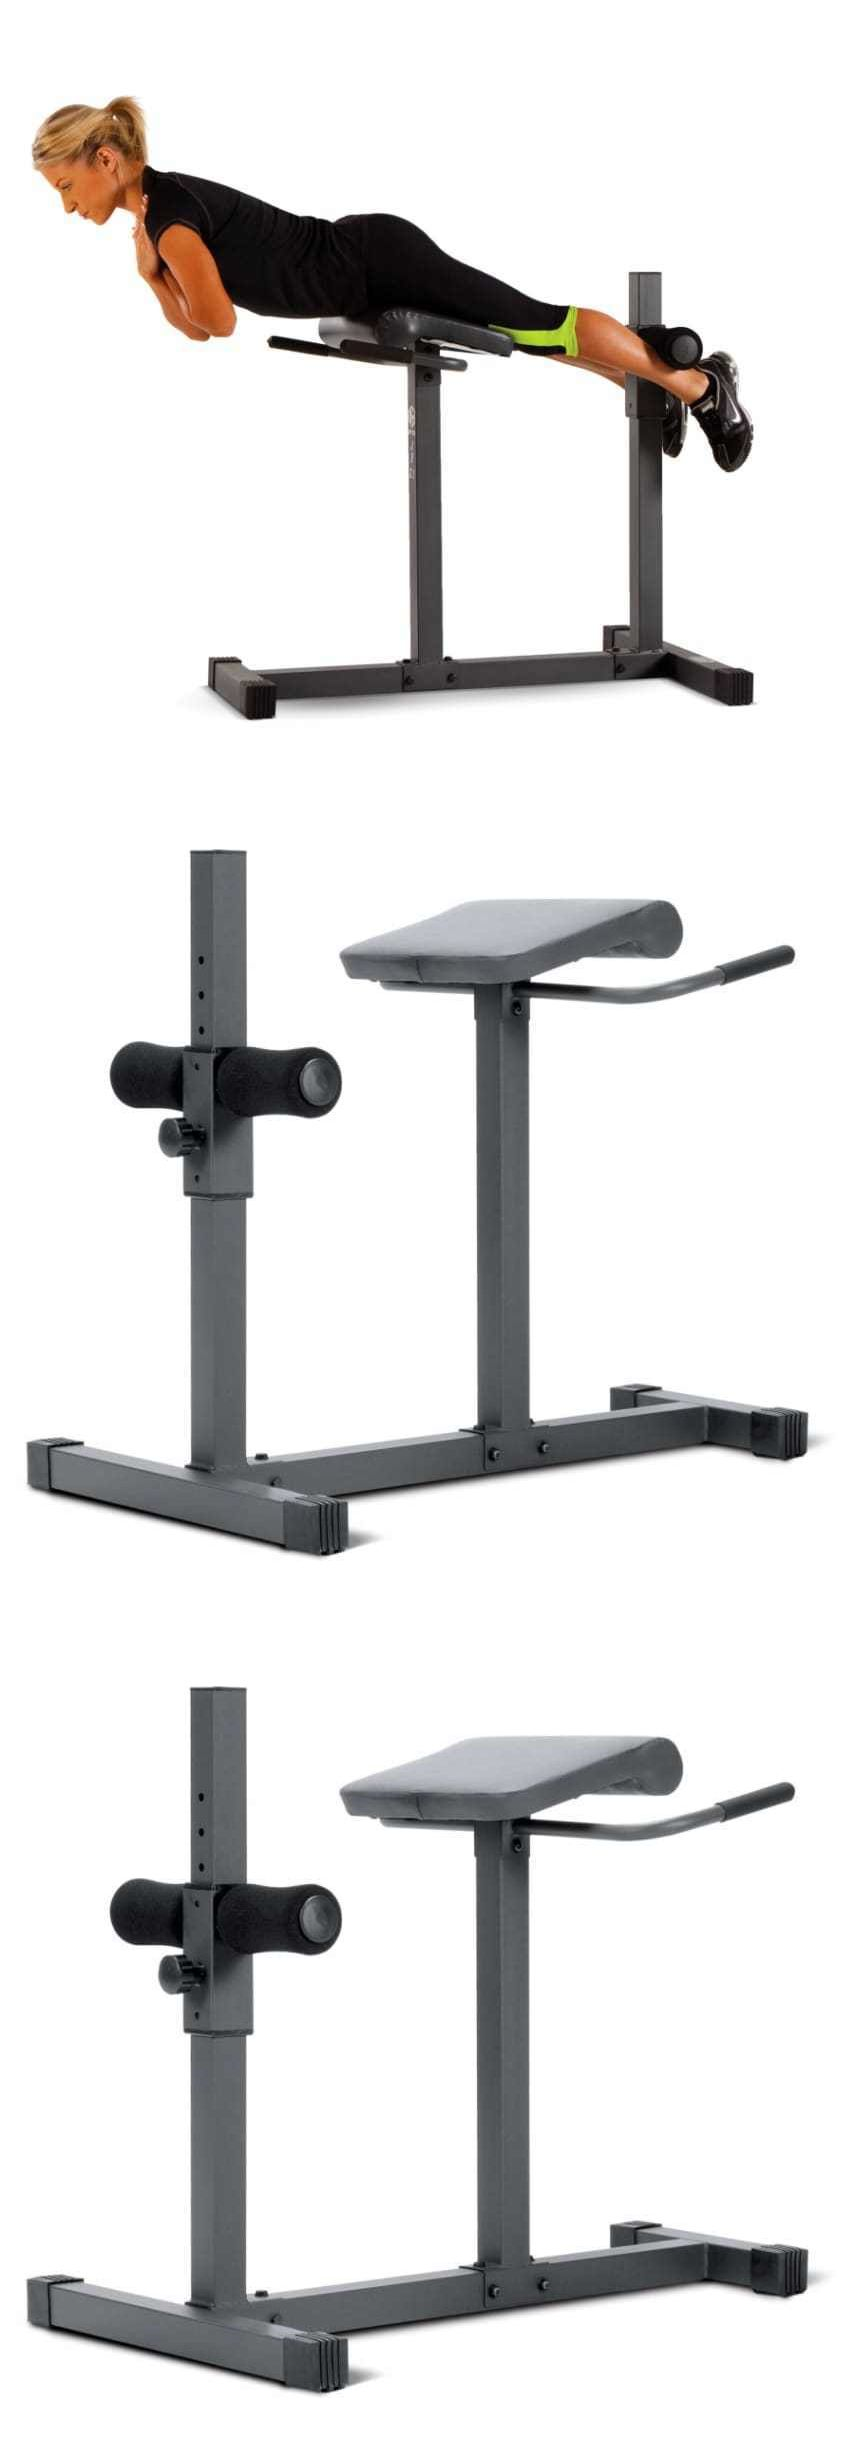 Abdominal Exercisers Exercise Chair Bench Abdominal Back